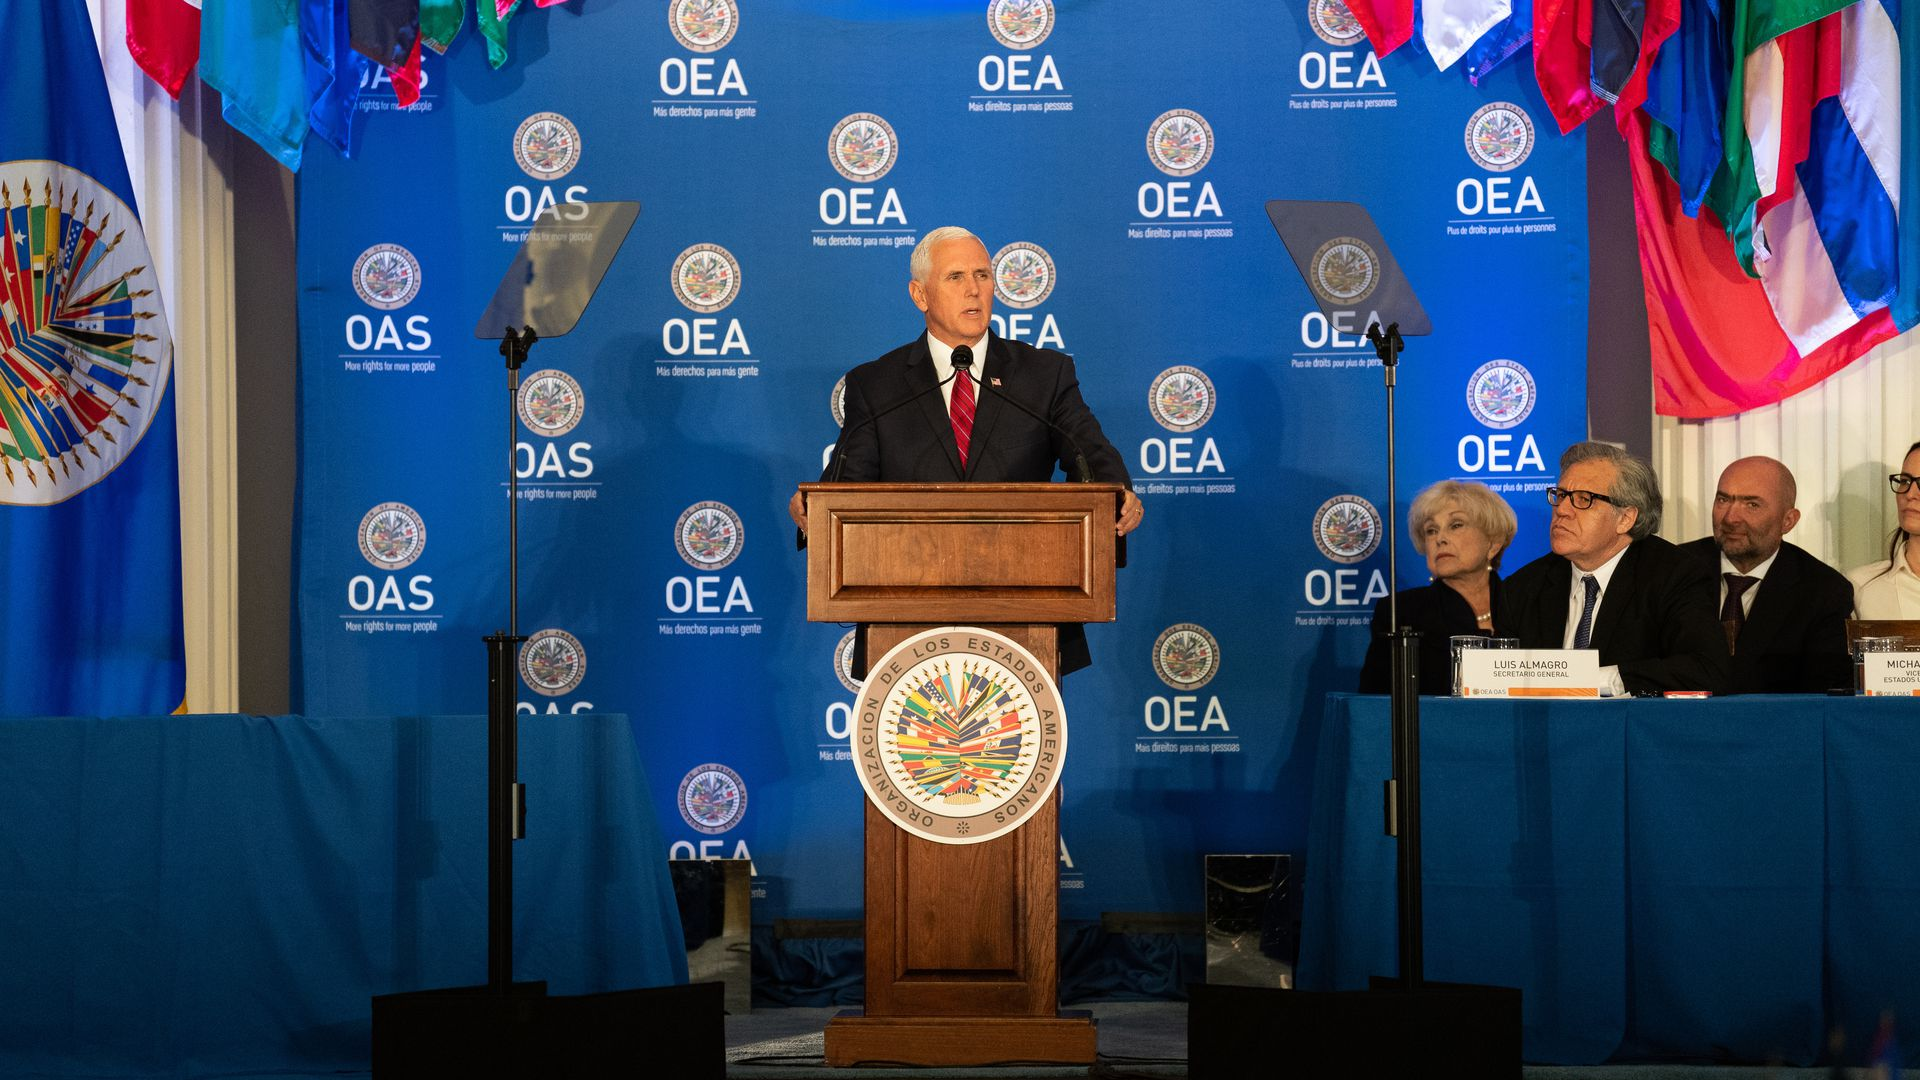 U.S. Vice President Mike Pence at the Organization of American States in Washington, DC.